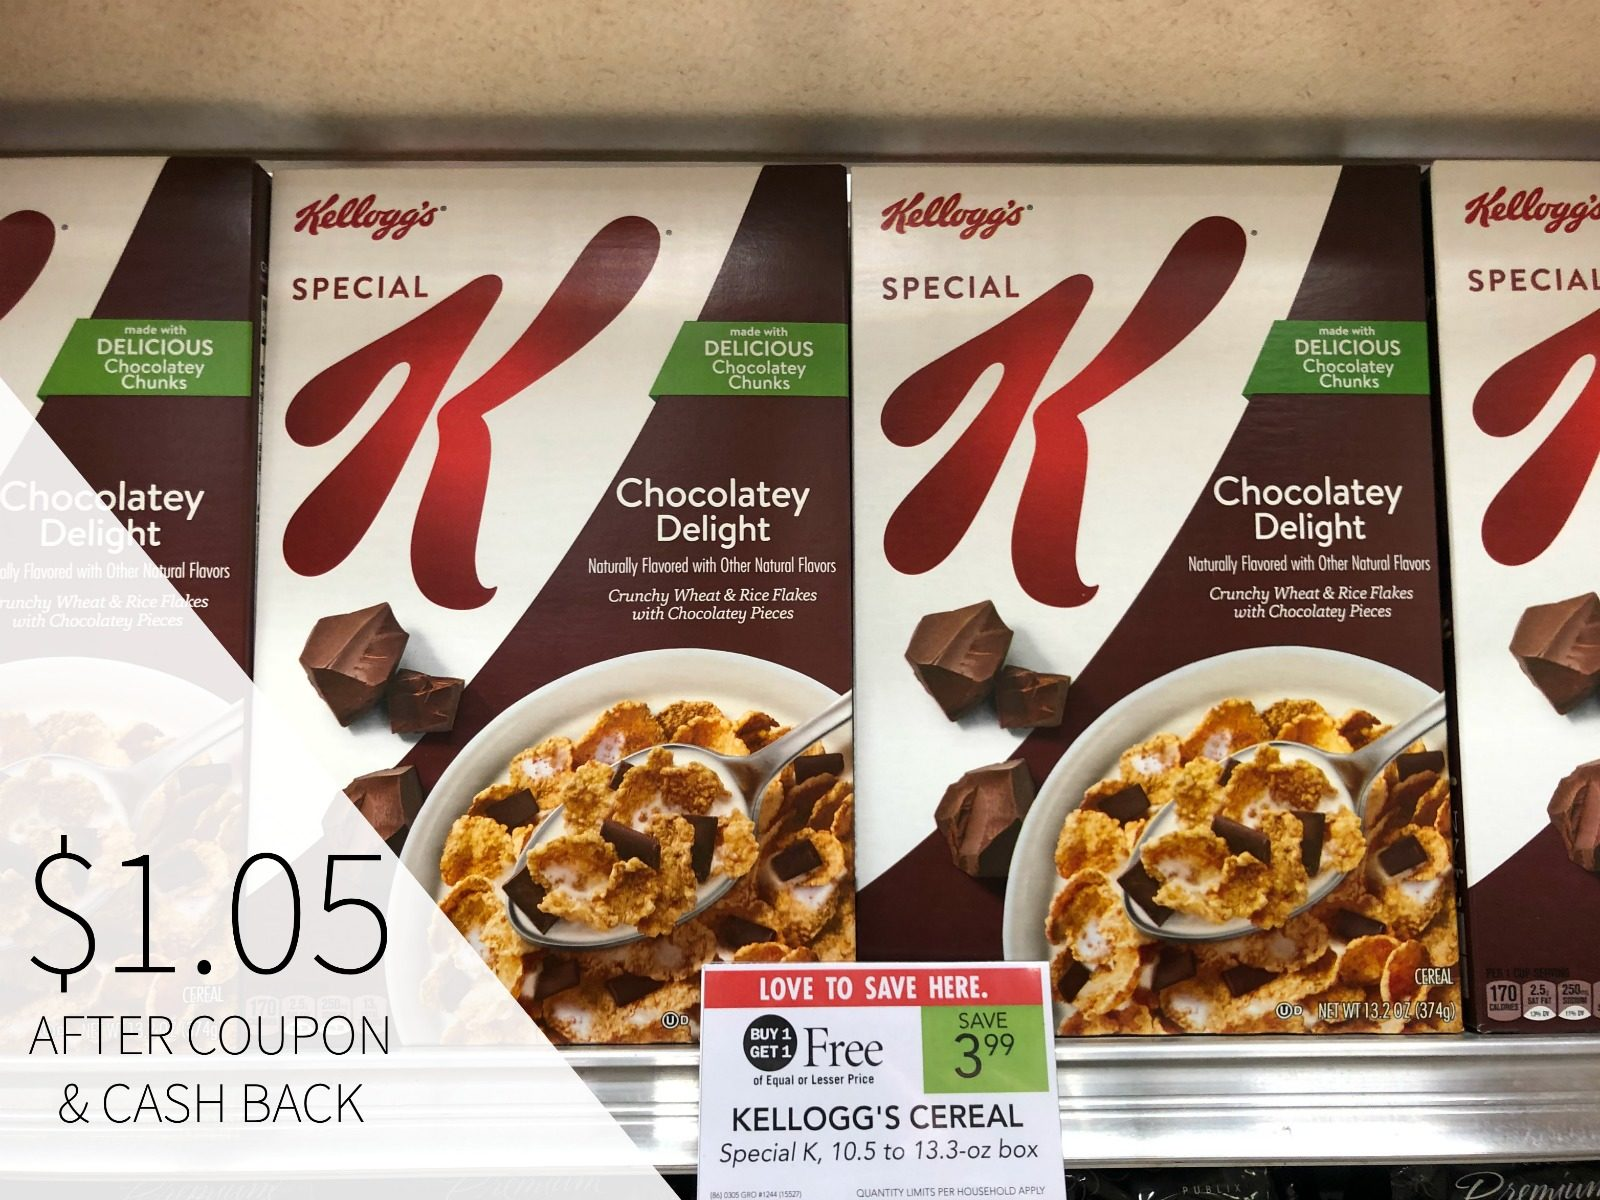 Stock Up On Your Favorite Kellogg's Cereals During The Publix BOGO Sale! on I Heart Publix